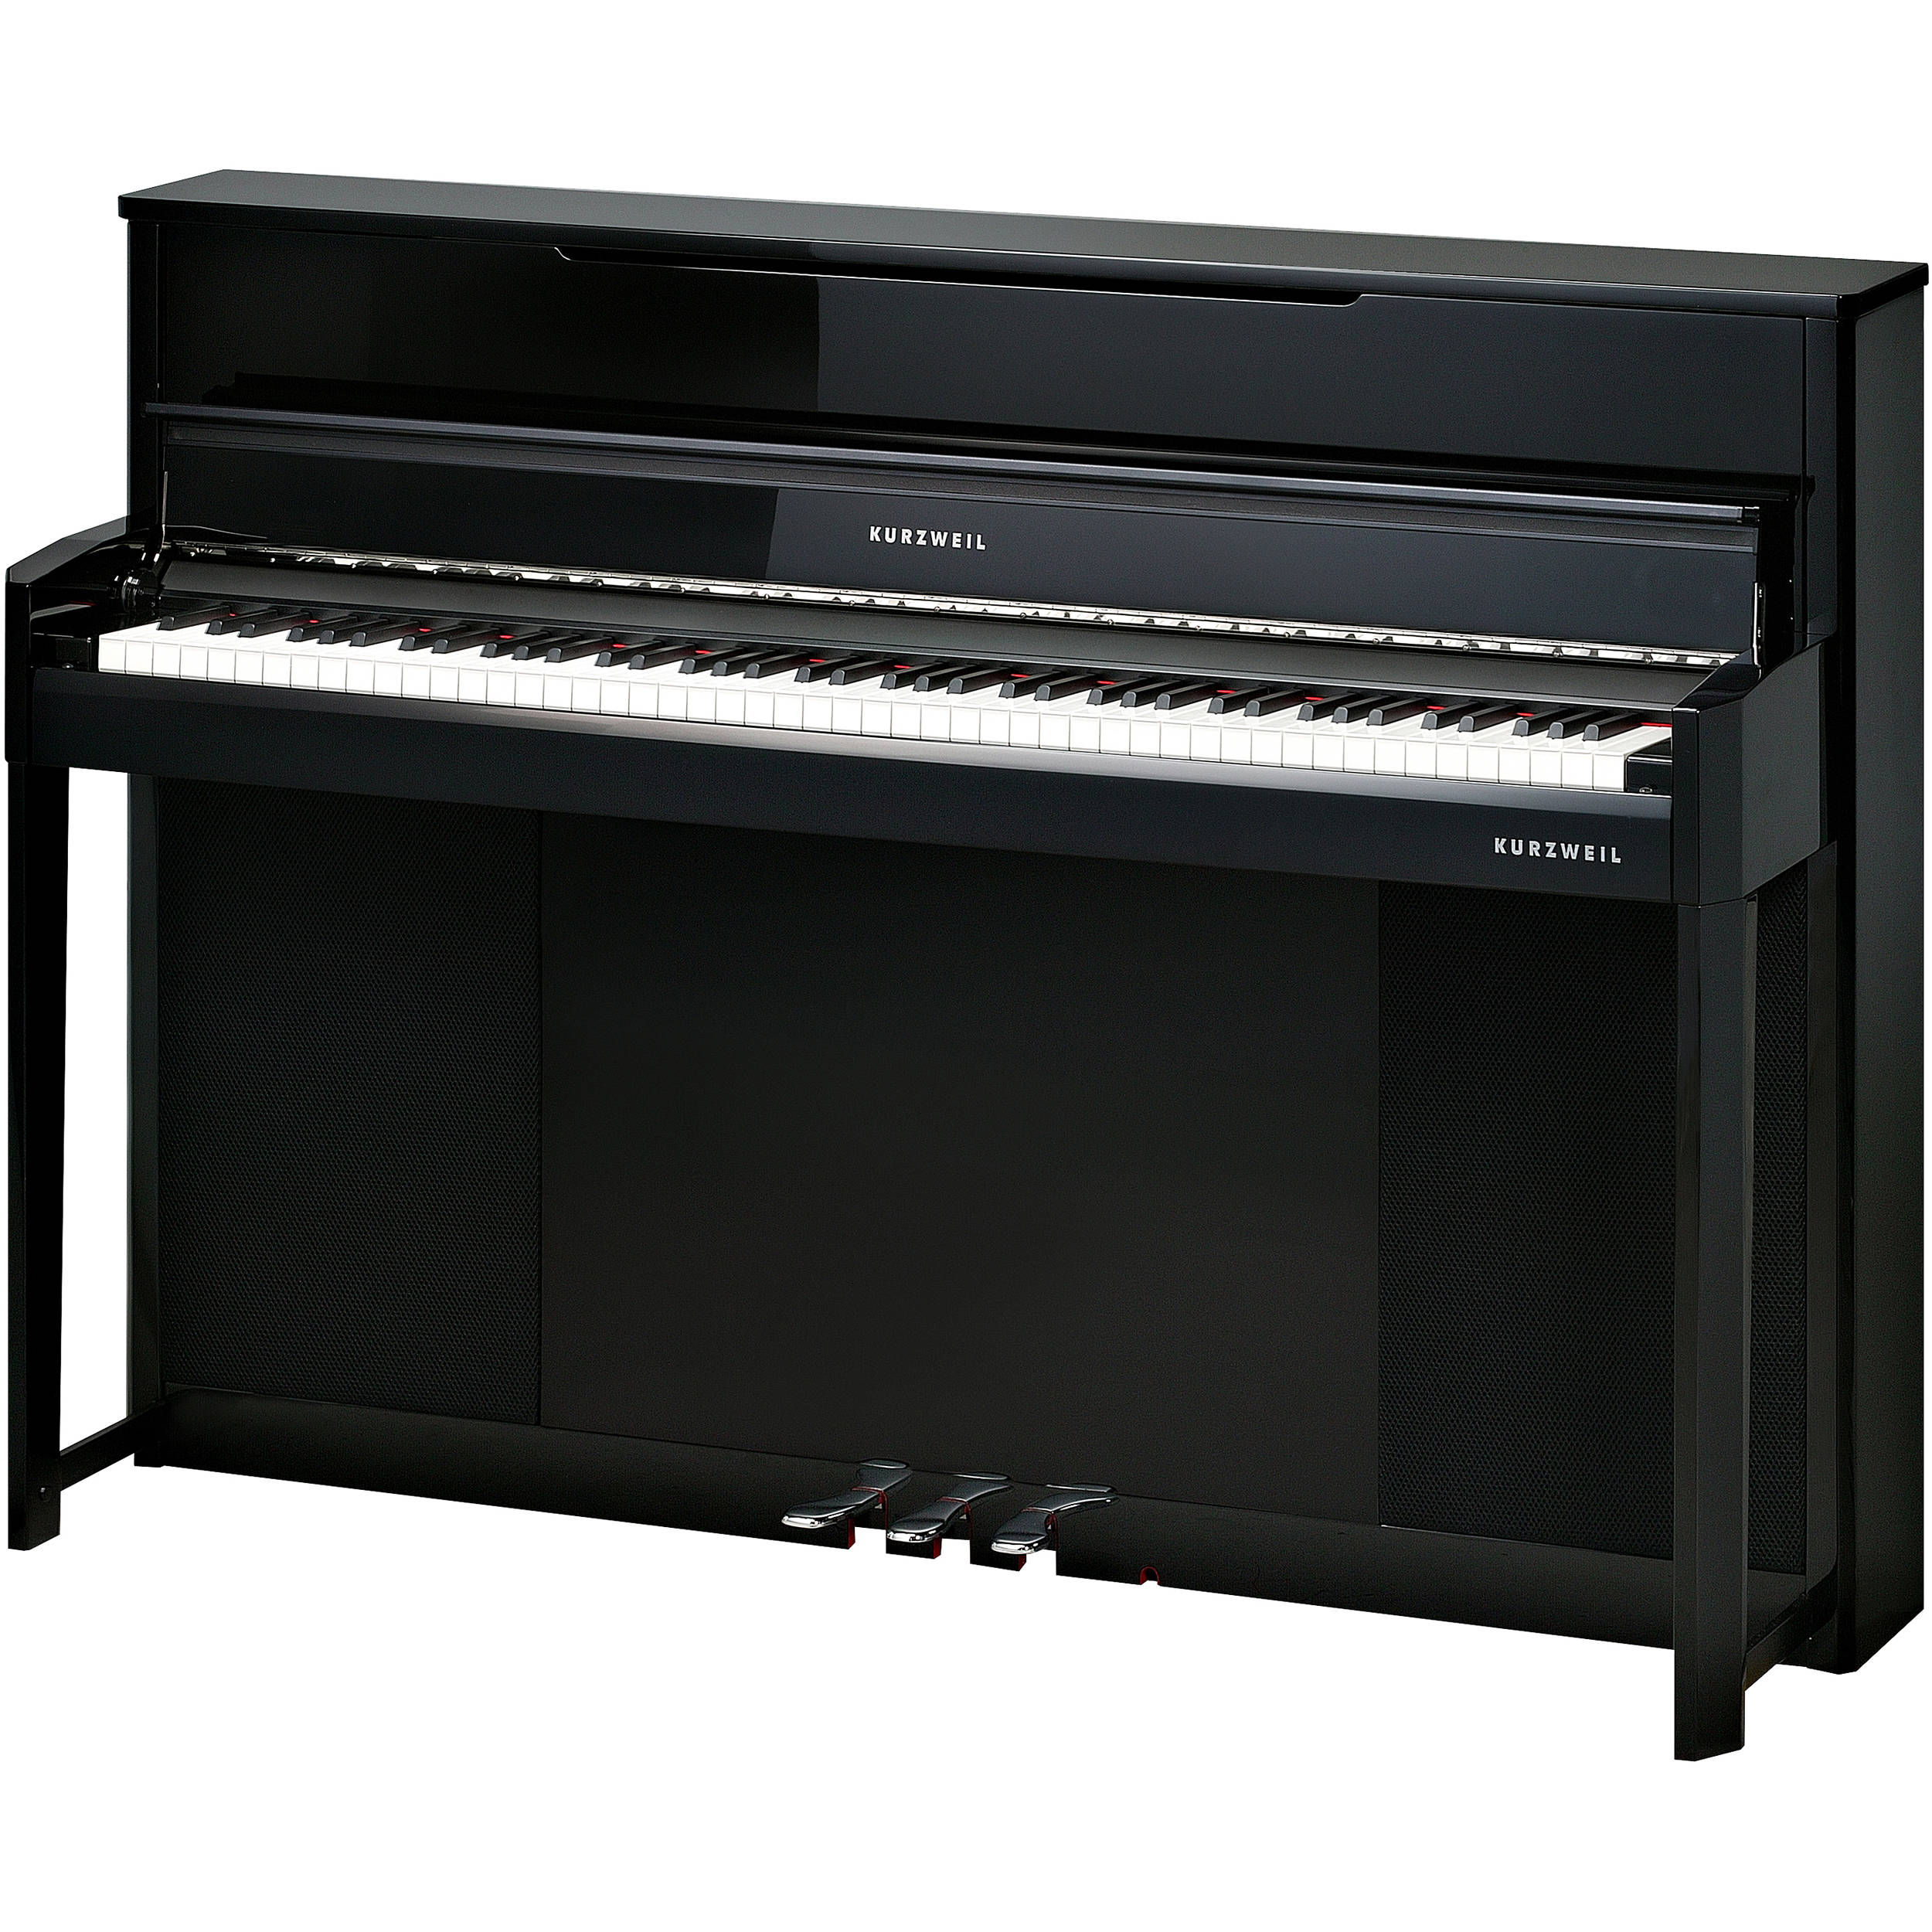 kurzweil cup1 ep compact digital upright piano ebony cup1 ep. Black Bedroom Furniture Sets. Home Design Ideas